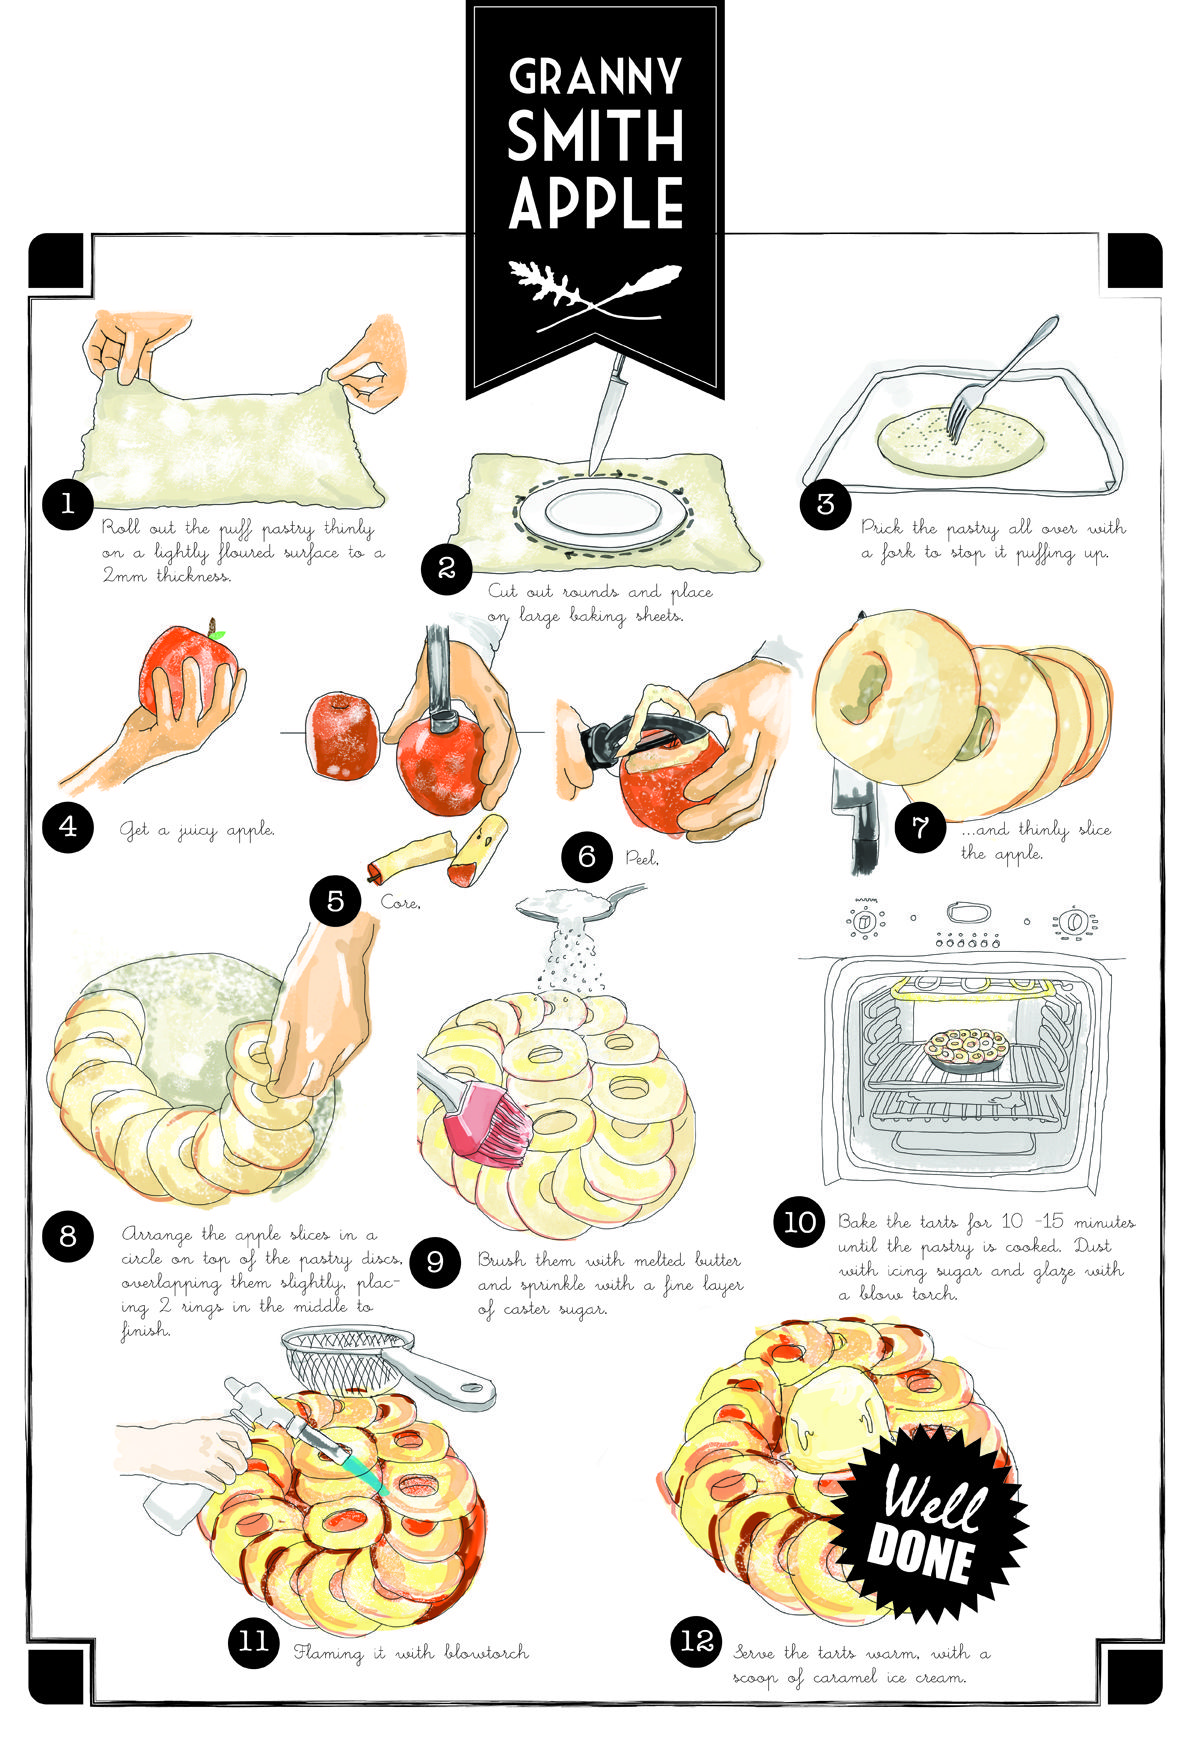 applepie by gordon ramsay illustrated food art pinterest recette illustr e cuisine. Black Bedroom Furniture Sets. Home Design Ideas